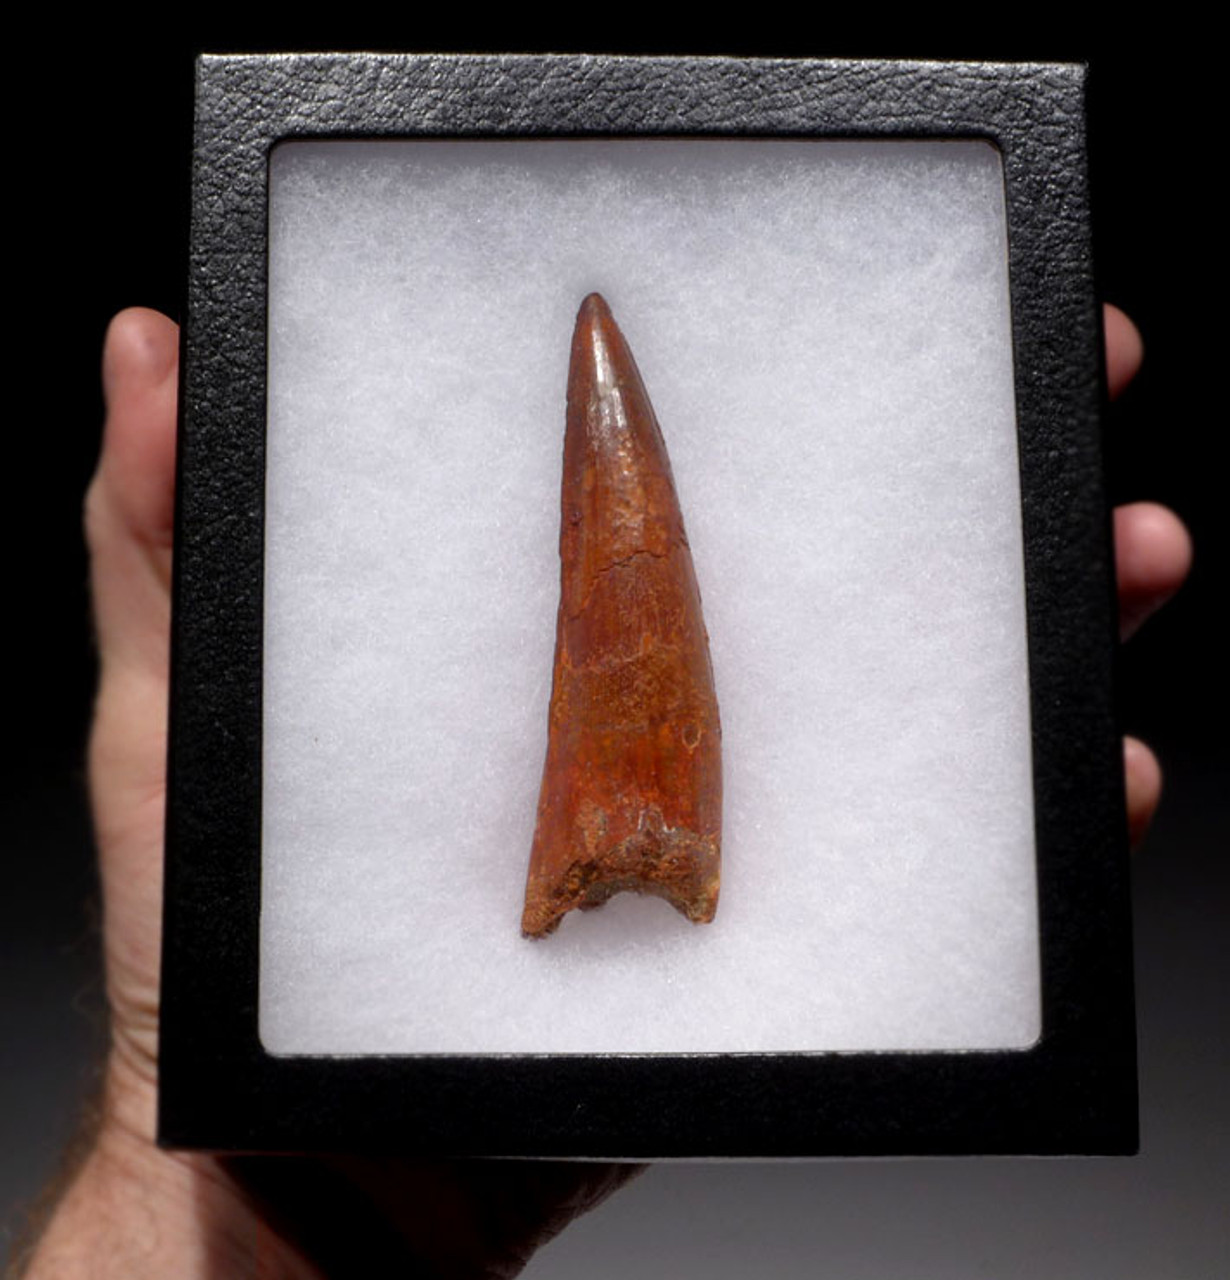 DT5-144 - EXTREMELY RARE CHOICE GRADE 4 INCH SPINOSAURUS DINOSAUR TOOTH WITH SHARP TIP